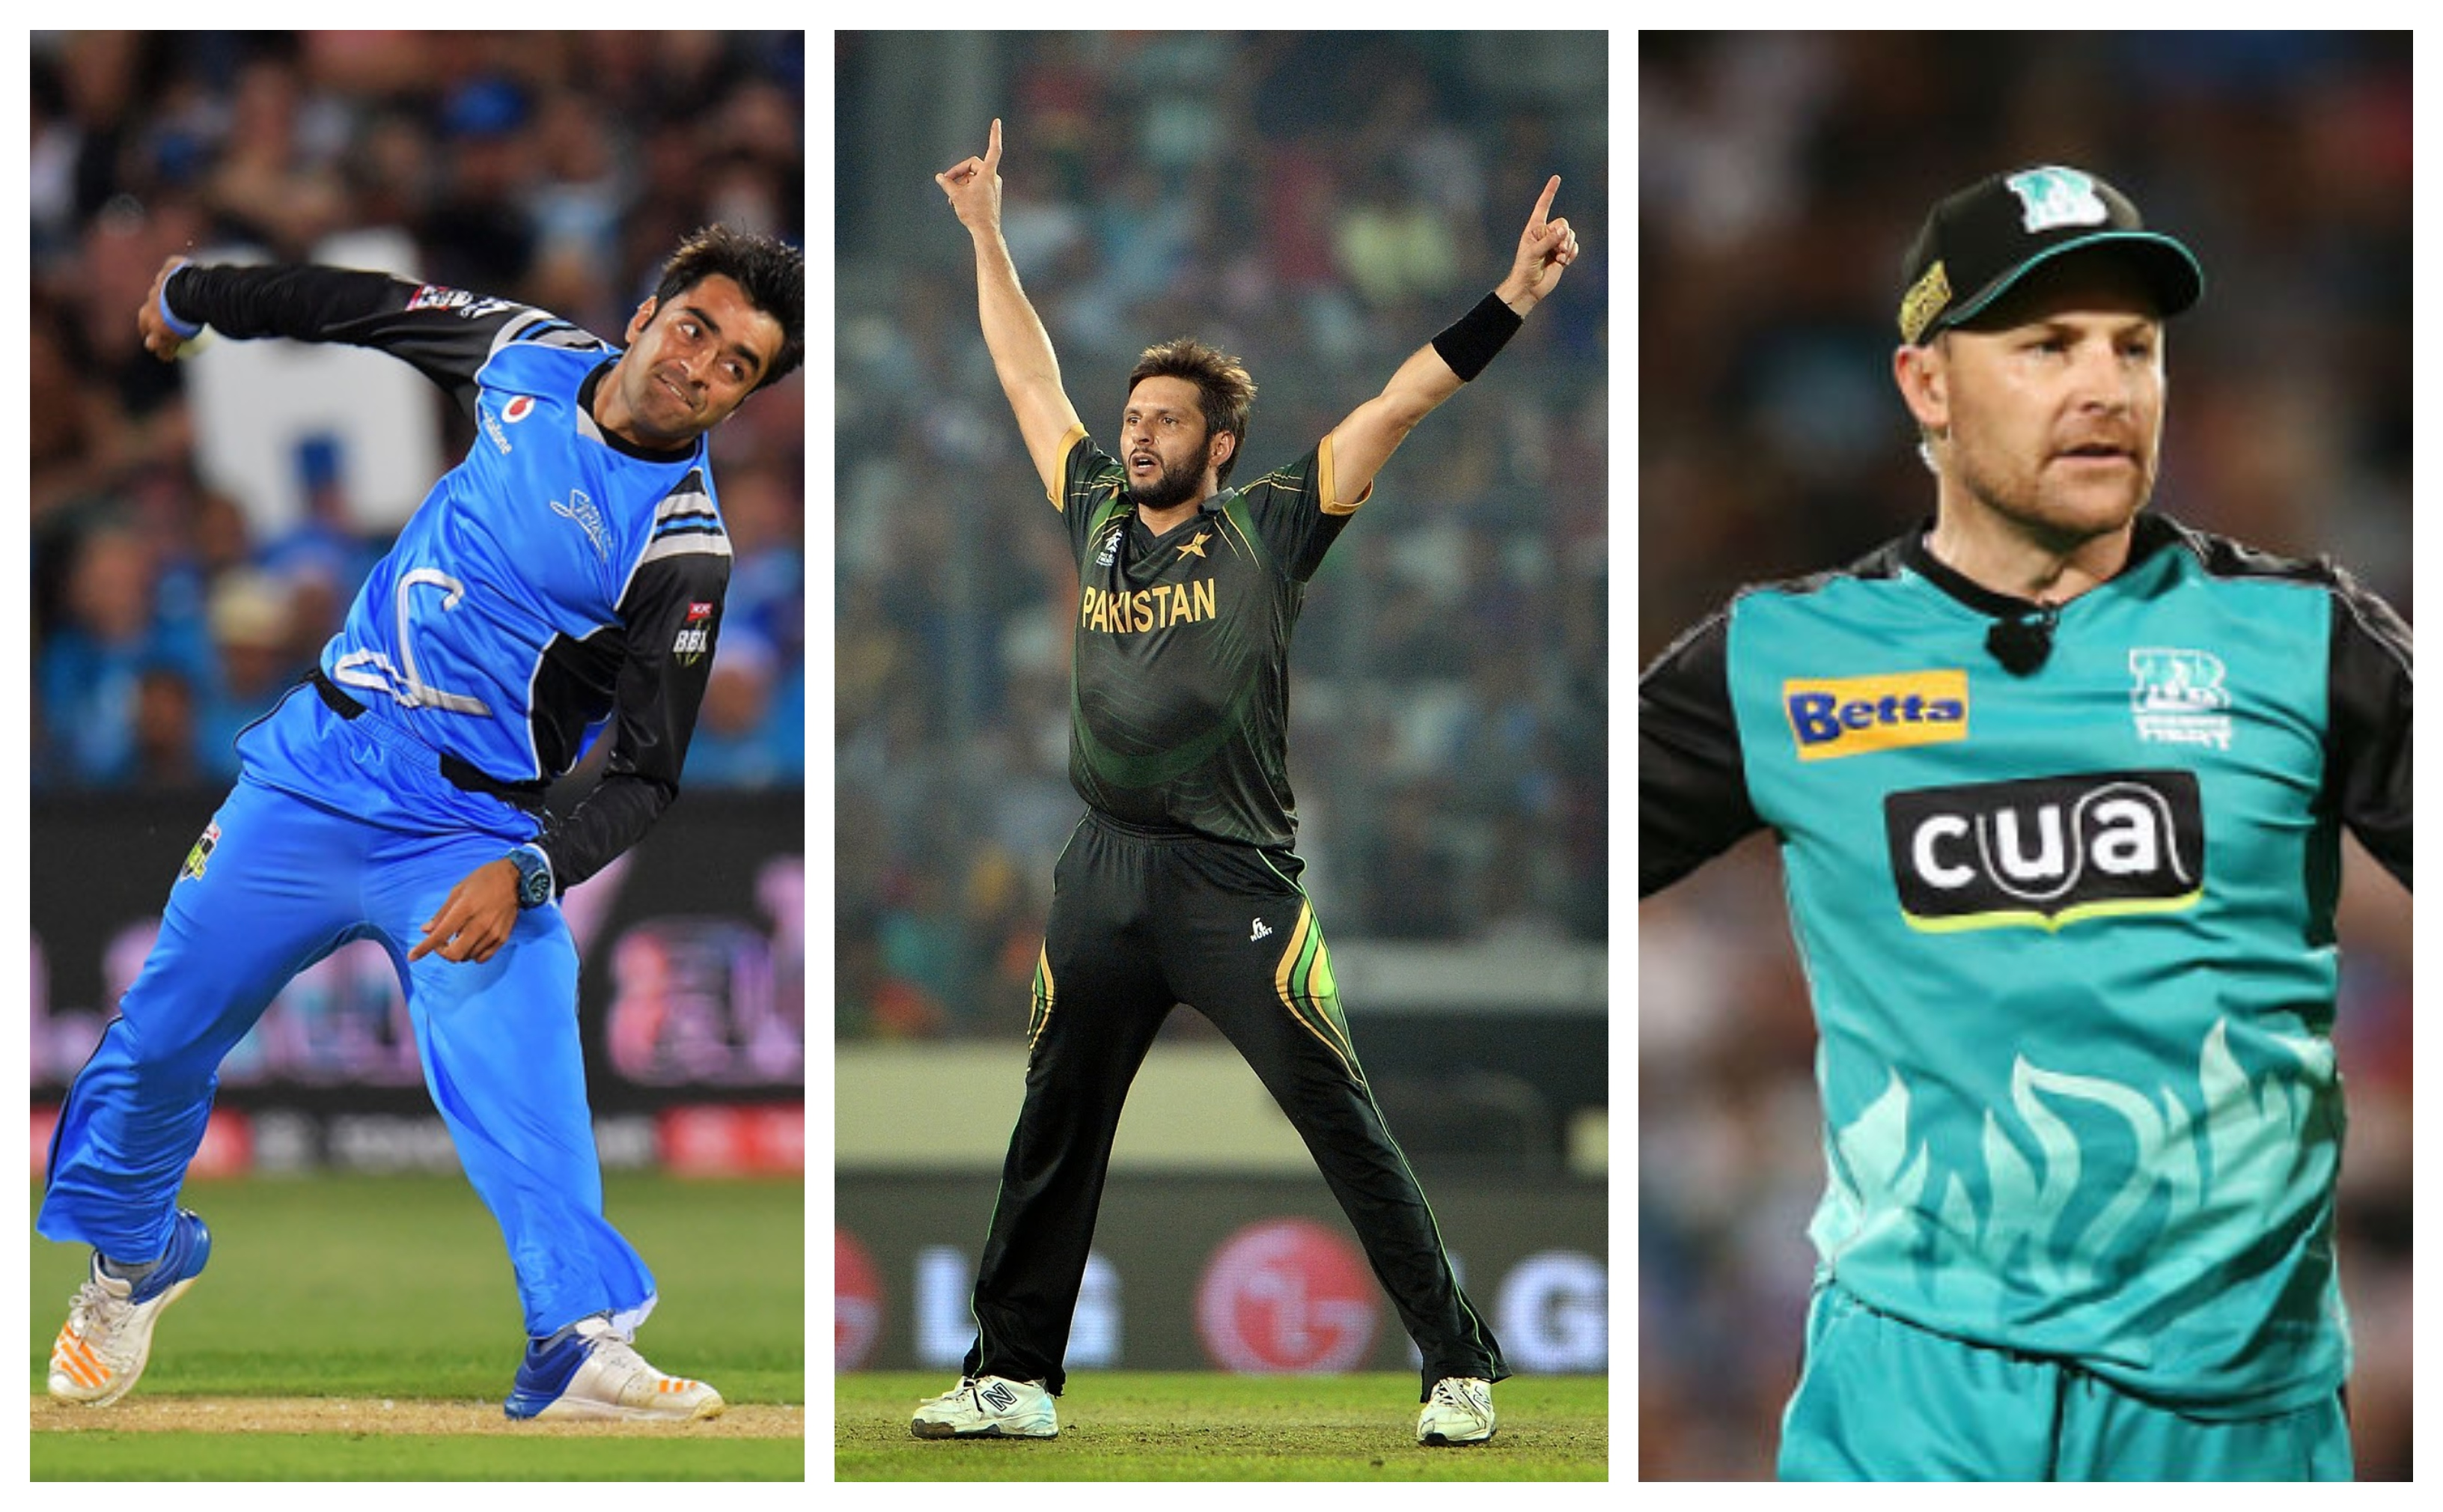 Rashid Khan, Shahid Afridi and Brendon McCullum, three outstanding T20 players.